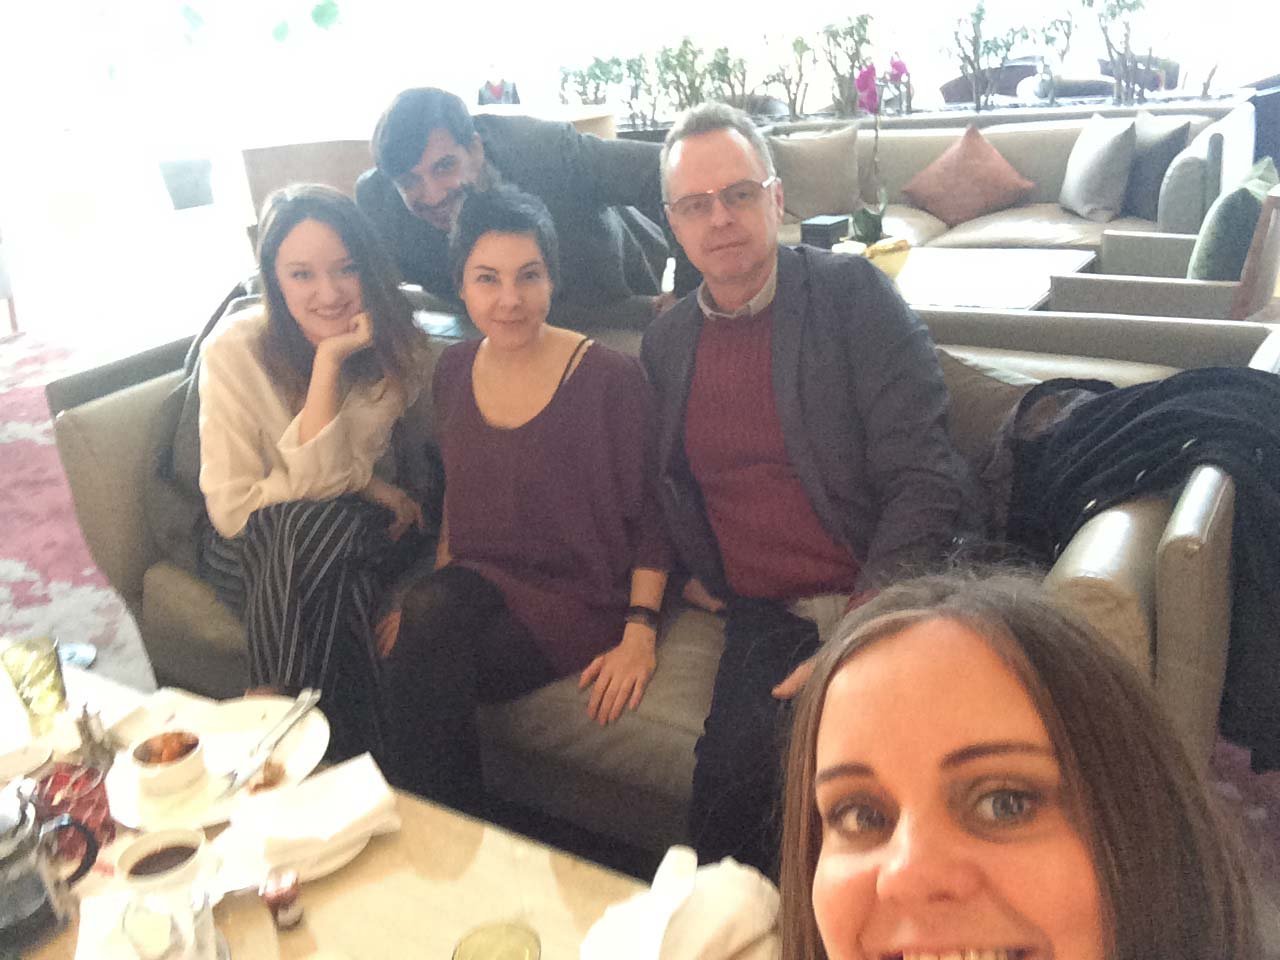 End of show breakfast! From left: Emilie Poulin, Sasha Kosovic, Joelle Craven, John Dondertman, and Jody Clement at the bottom